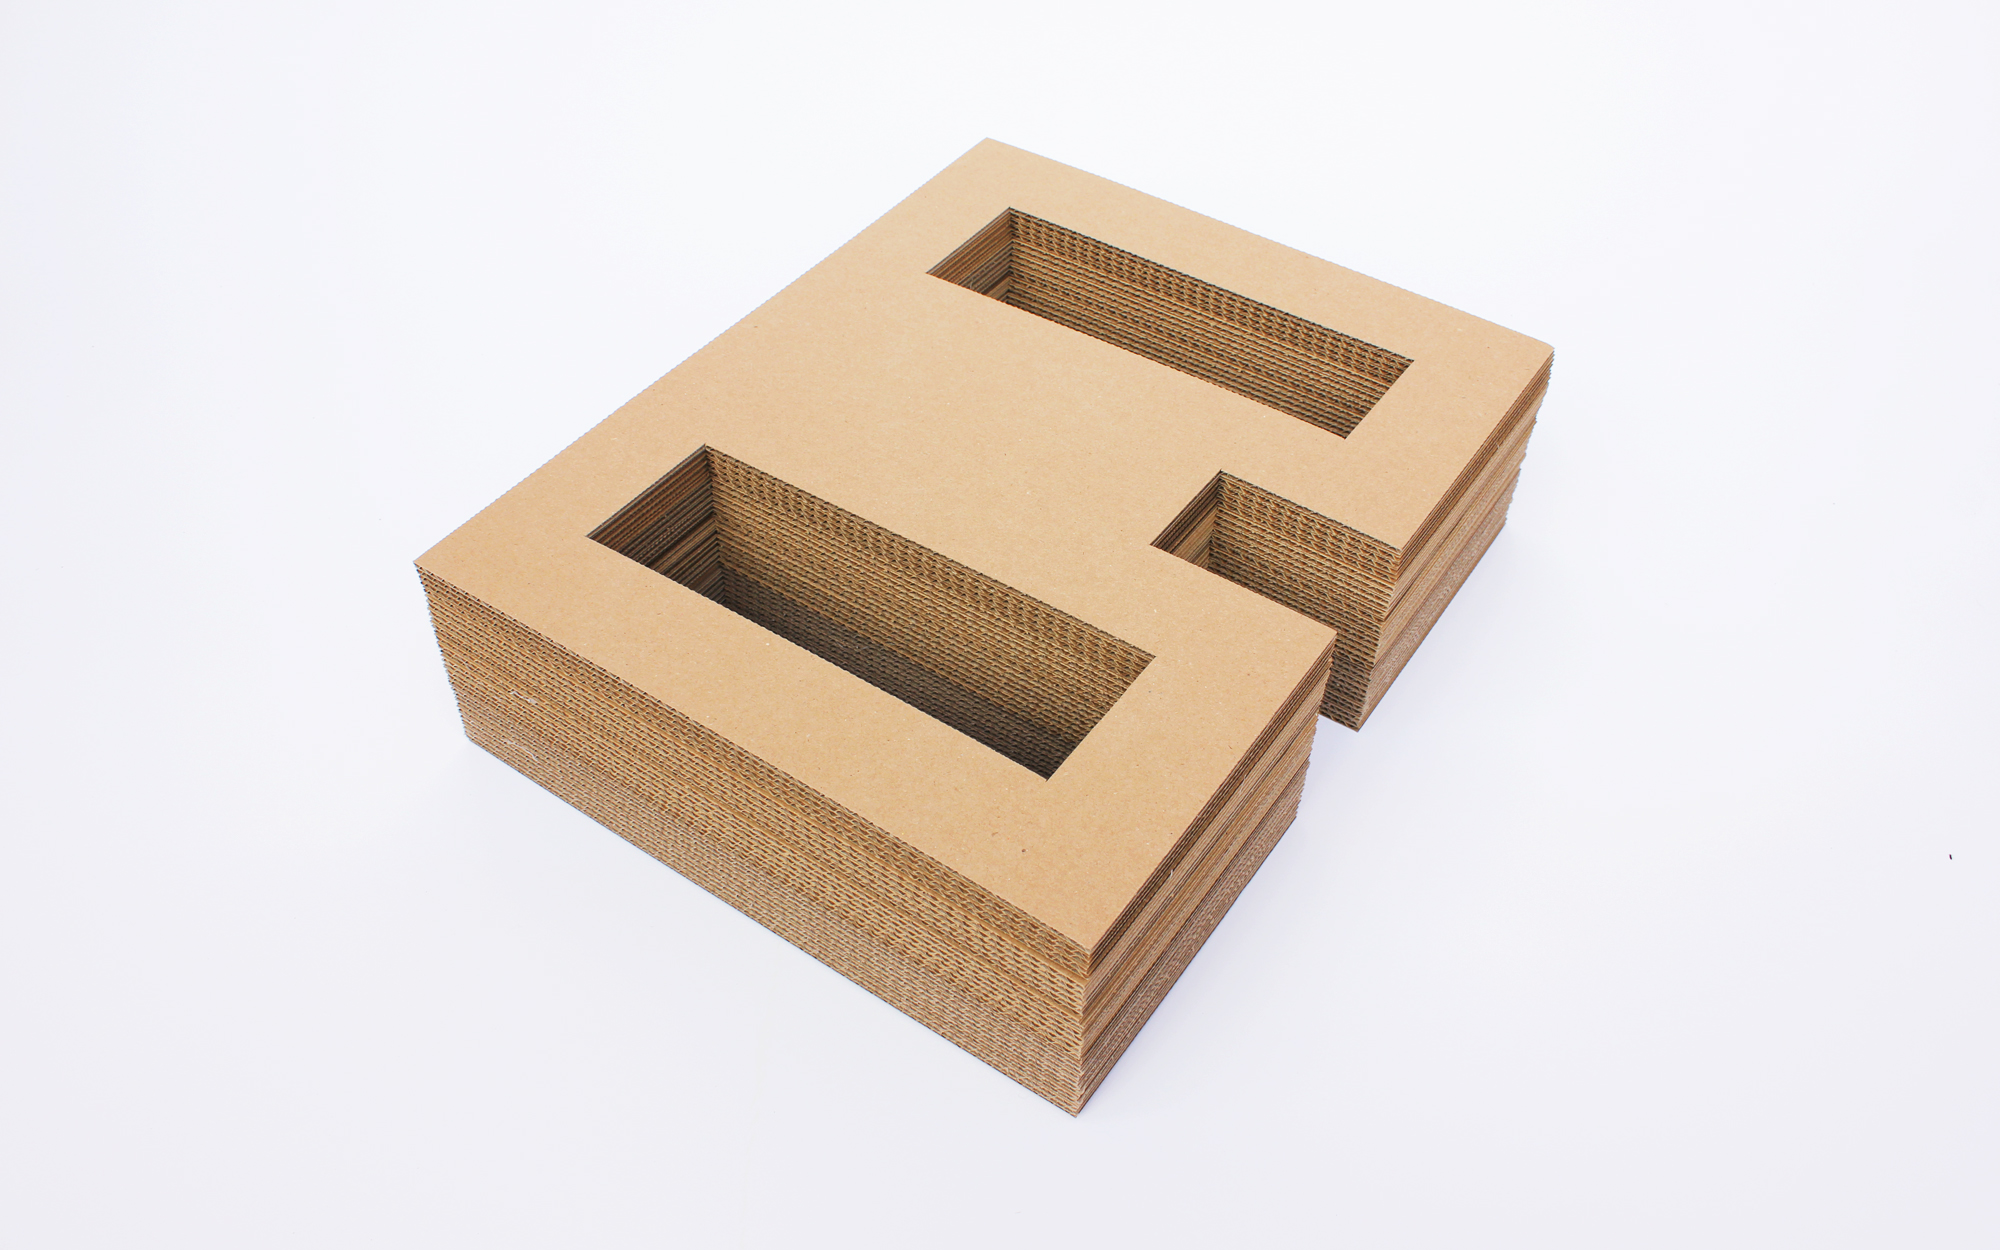 reuse_type_cardboard_typography_matthew_pomorski_graphic_designer_kent_4